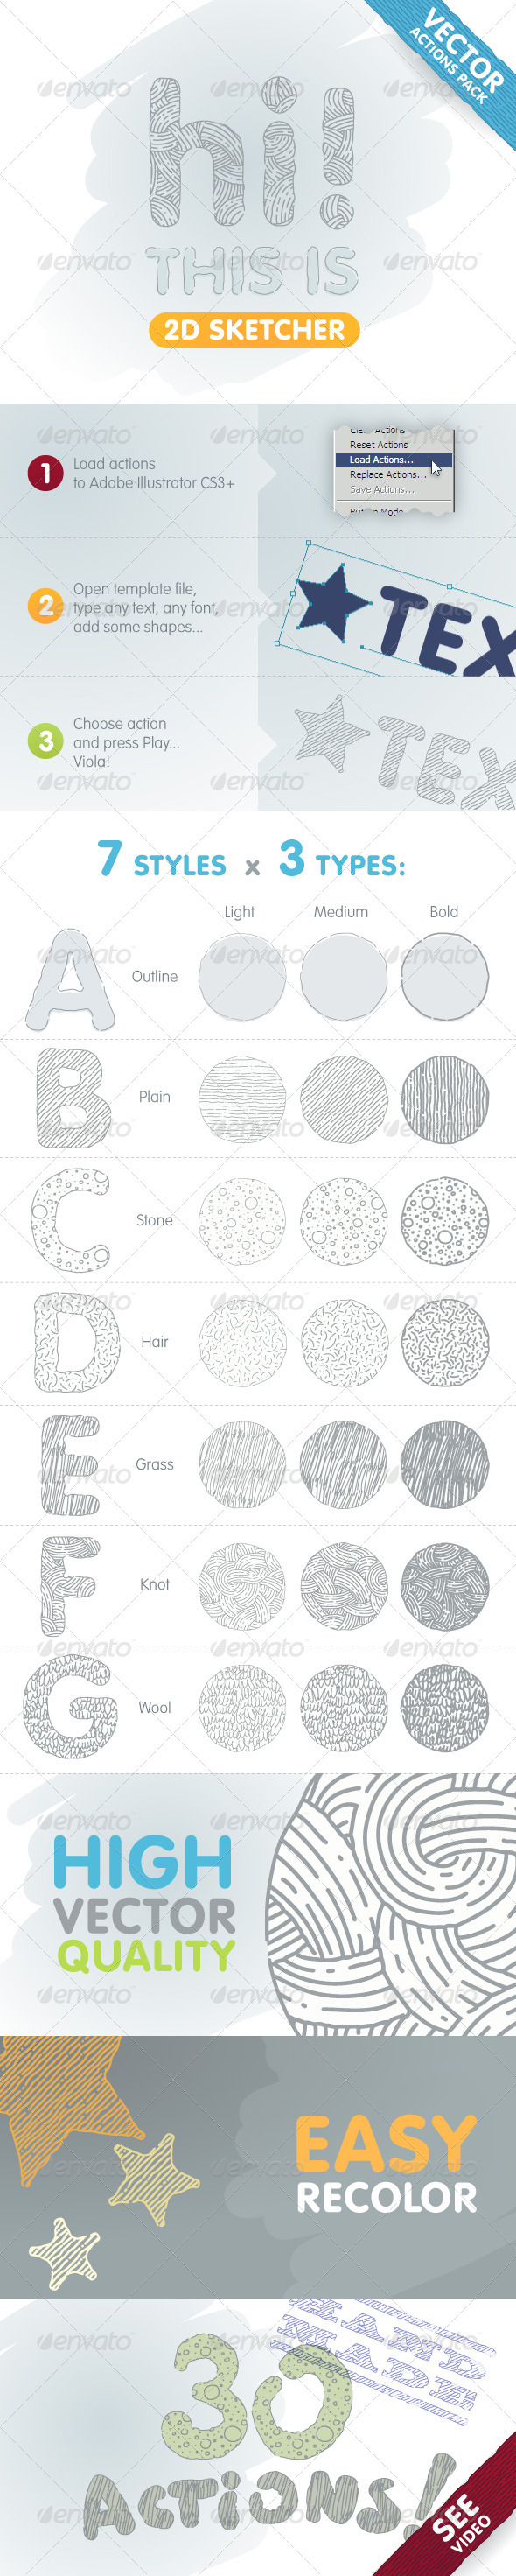 GraphicRiver 2D Sketcher Vector Actions Pack 610454